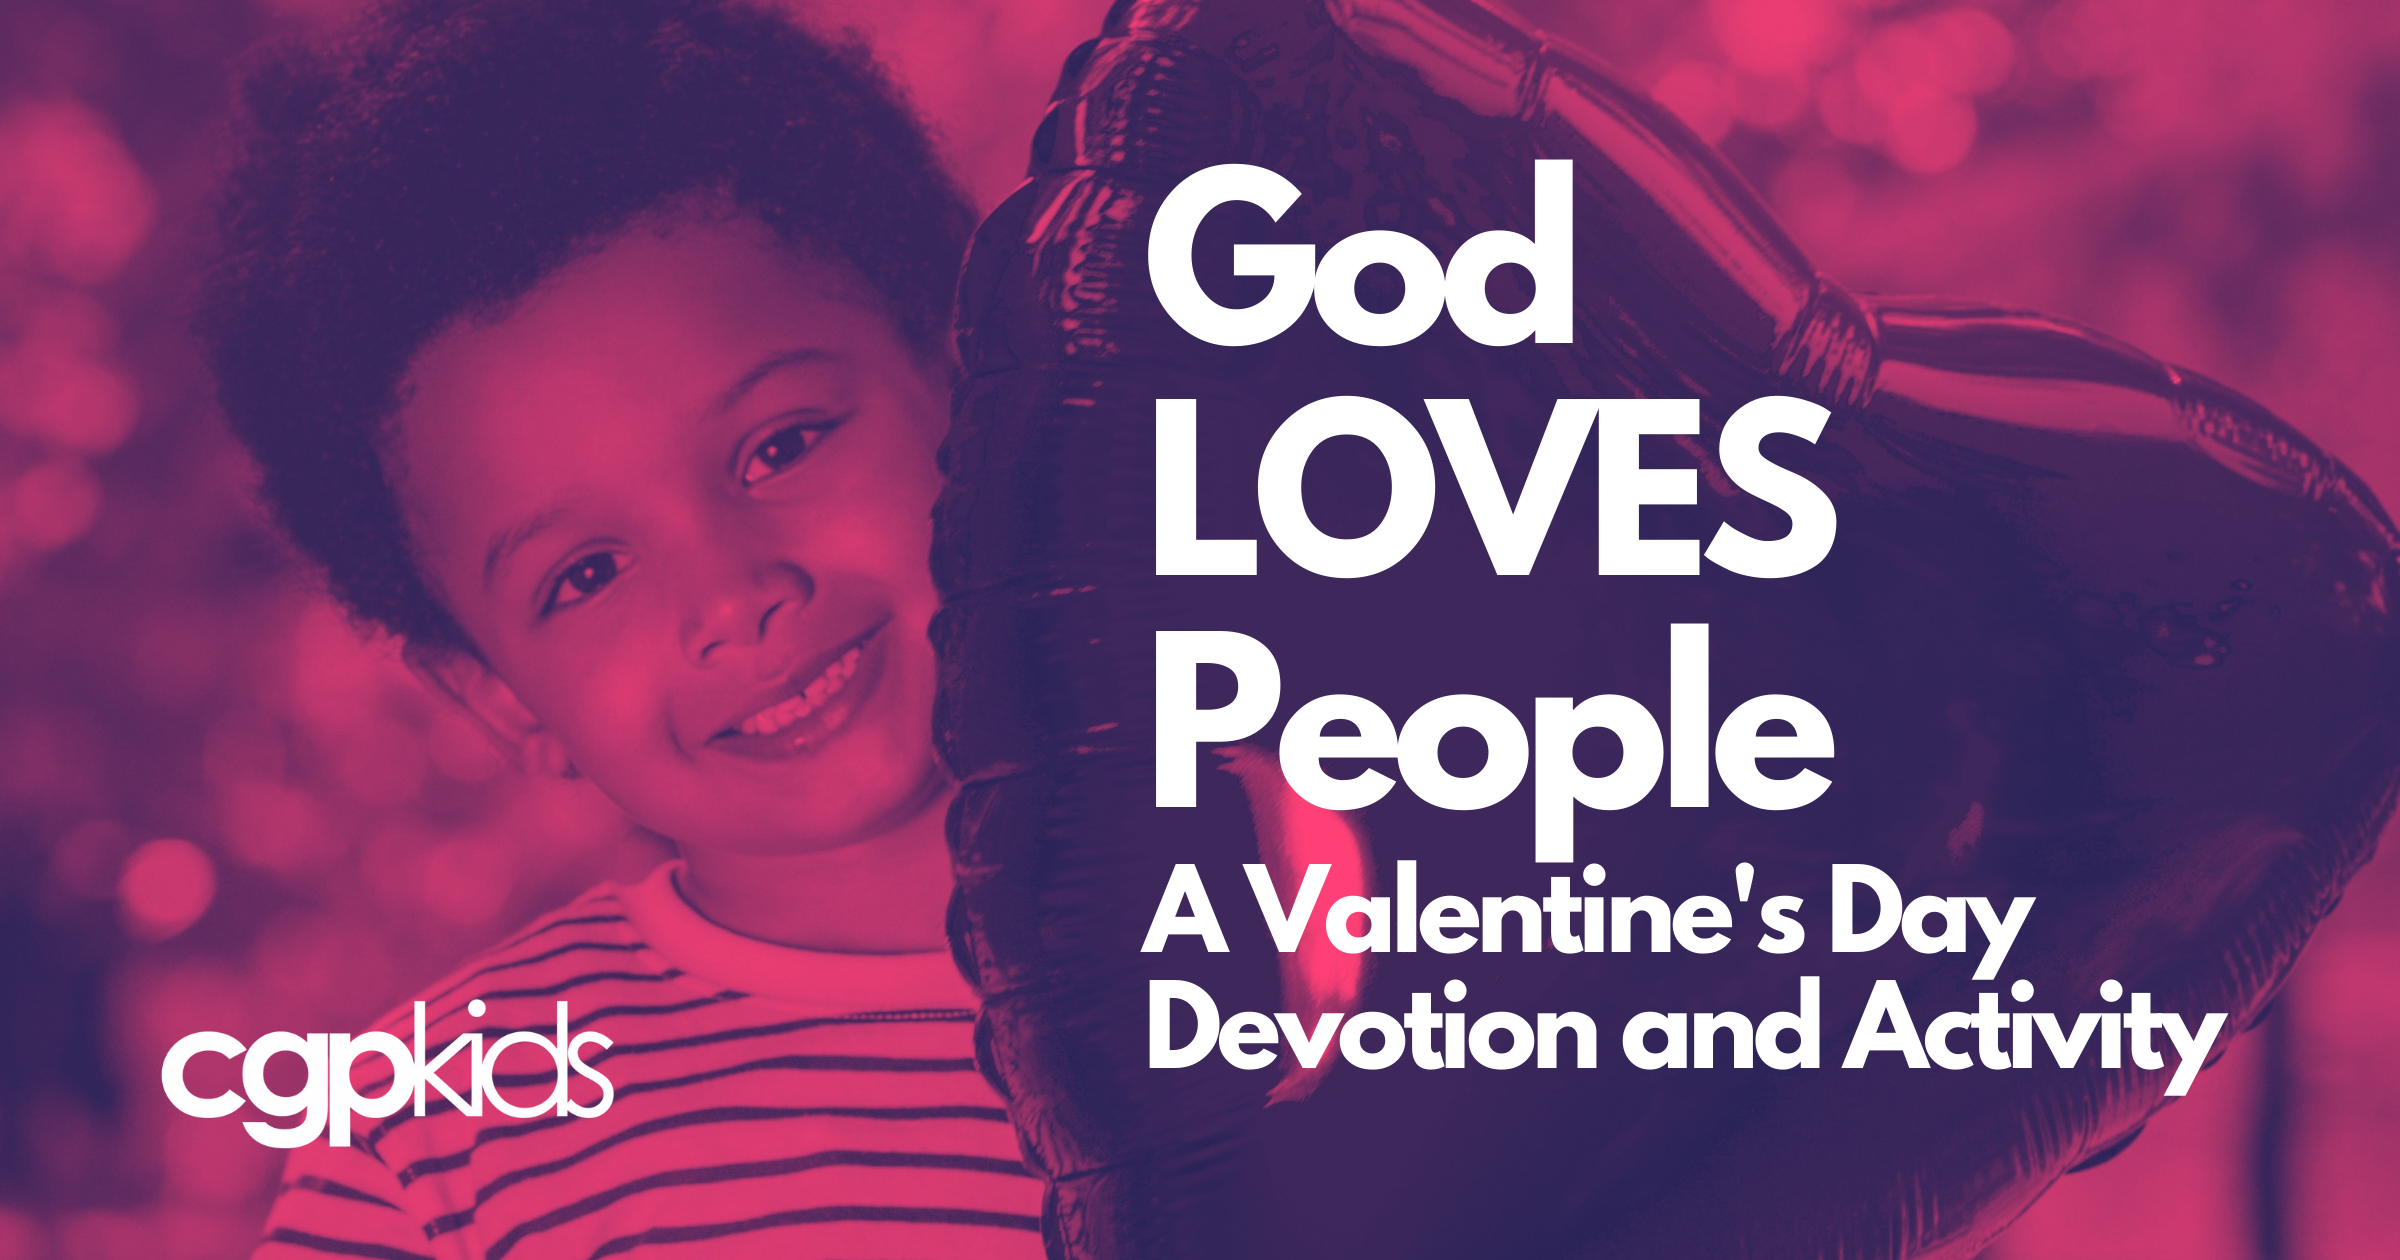 God LOVES People: Devotion and Activity